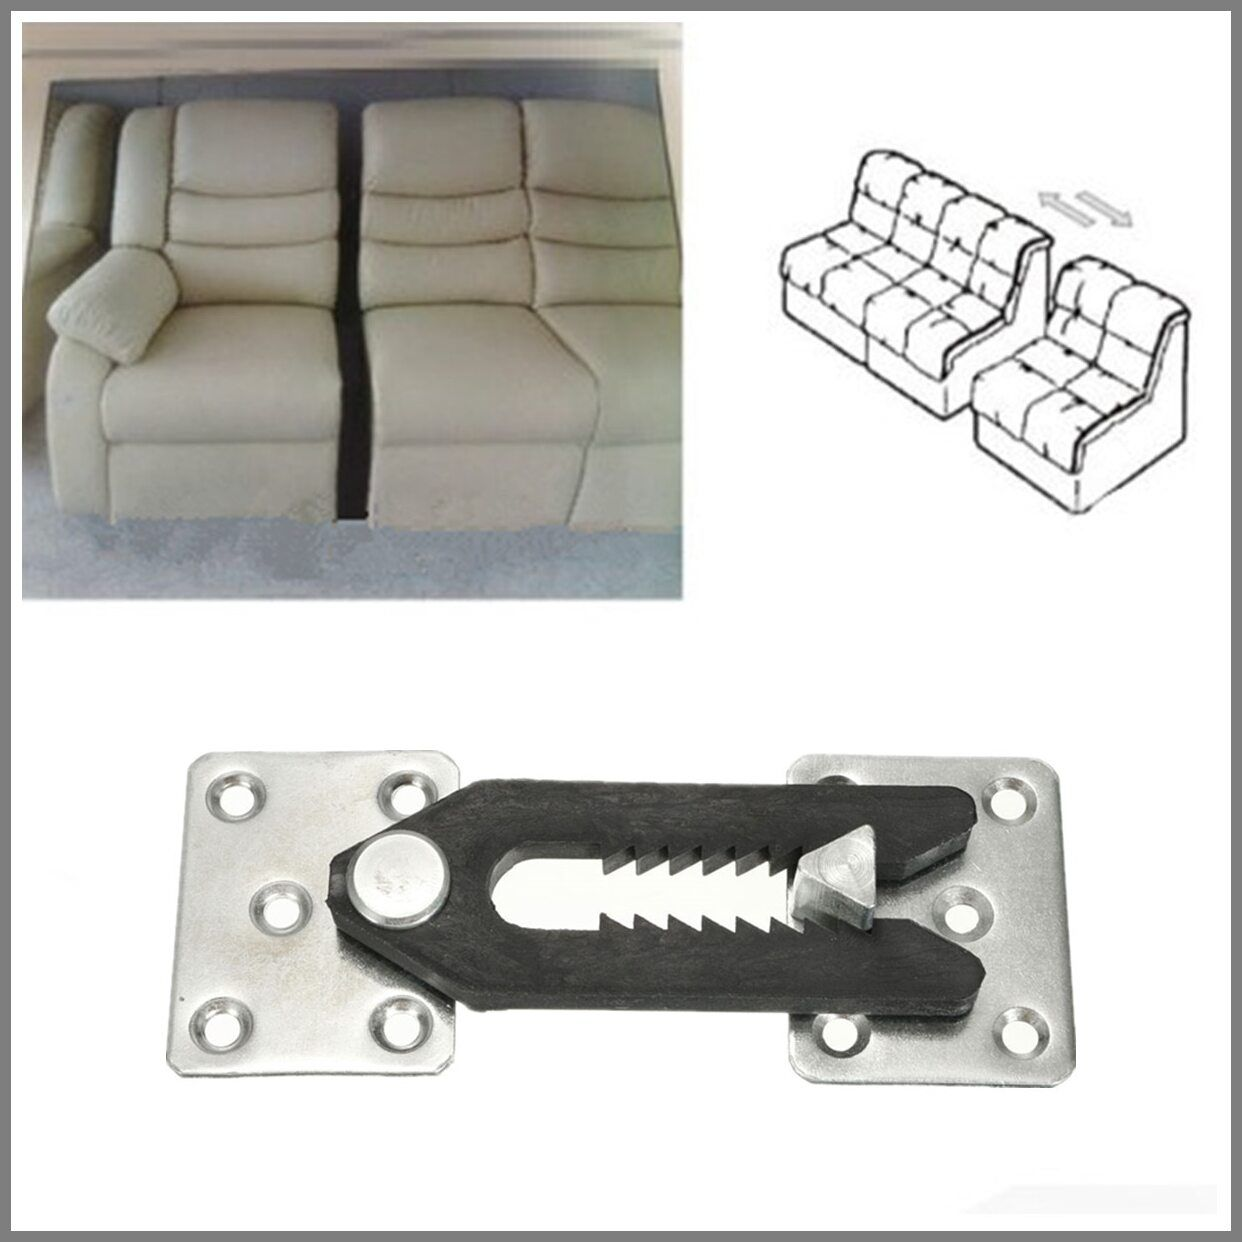 45 Reference Of Sofa Snap Sectional Couch Connector Instructions In 2020 Sectional Furniture Couch Furniture Couches Sectionals